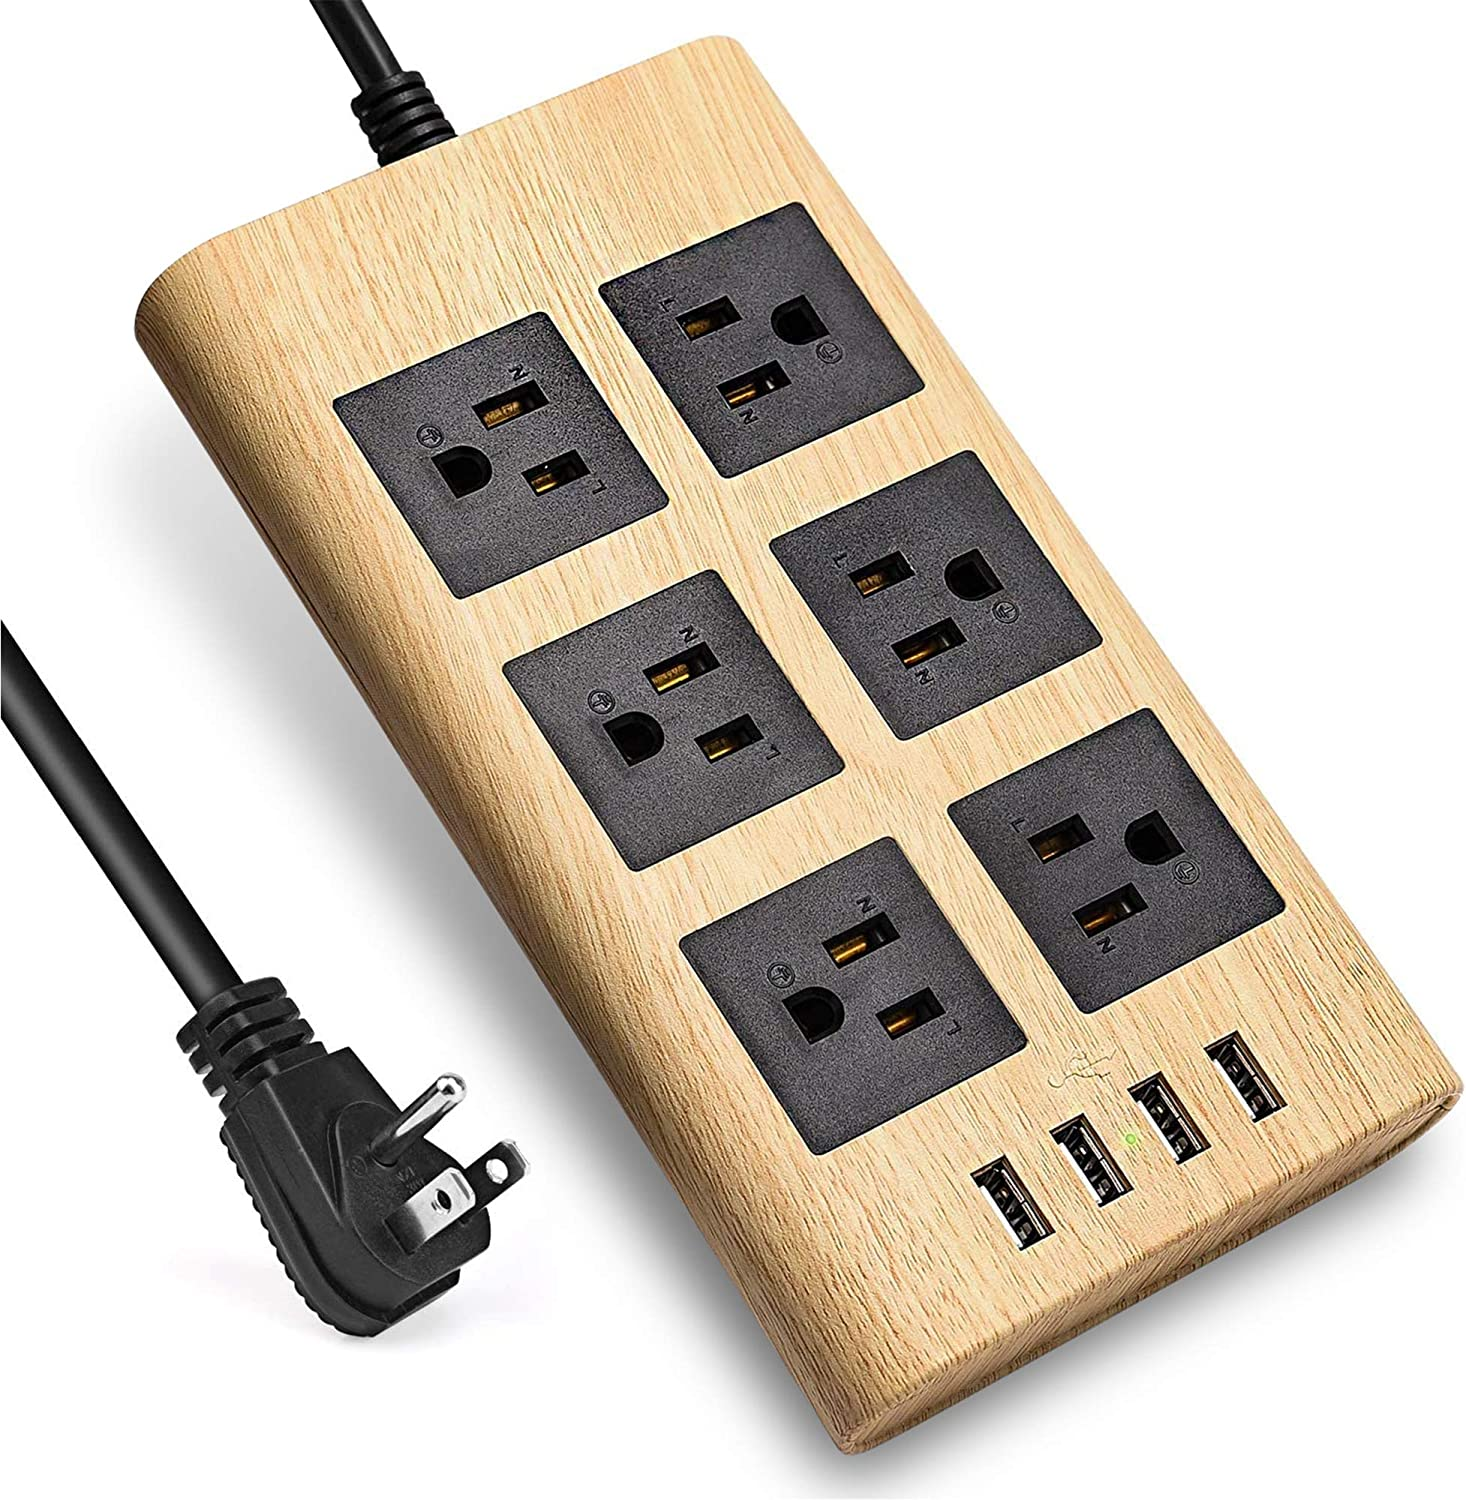 9-Outlet Surge Protector Power Strip 3 USB Ports 6Ft Extension Cord 2in1 Plug-in